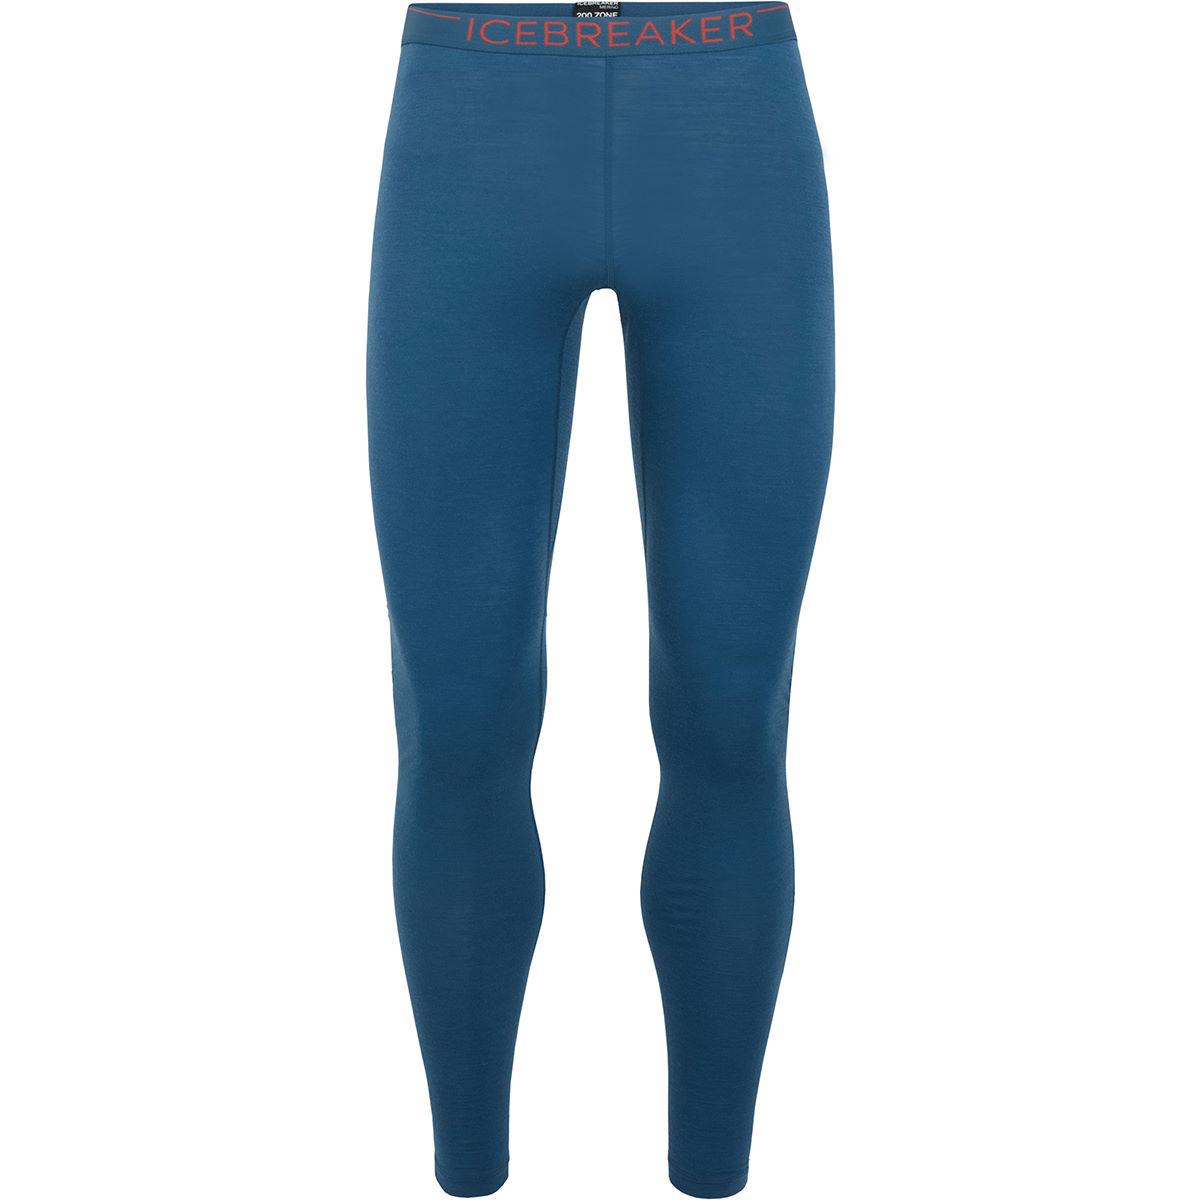 Icebreaker 200 Zone Merino Leggings - Mallas interiores